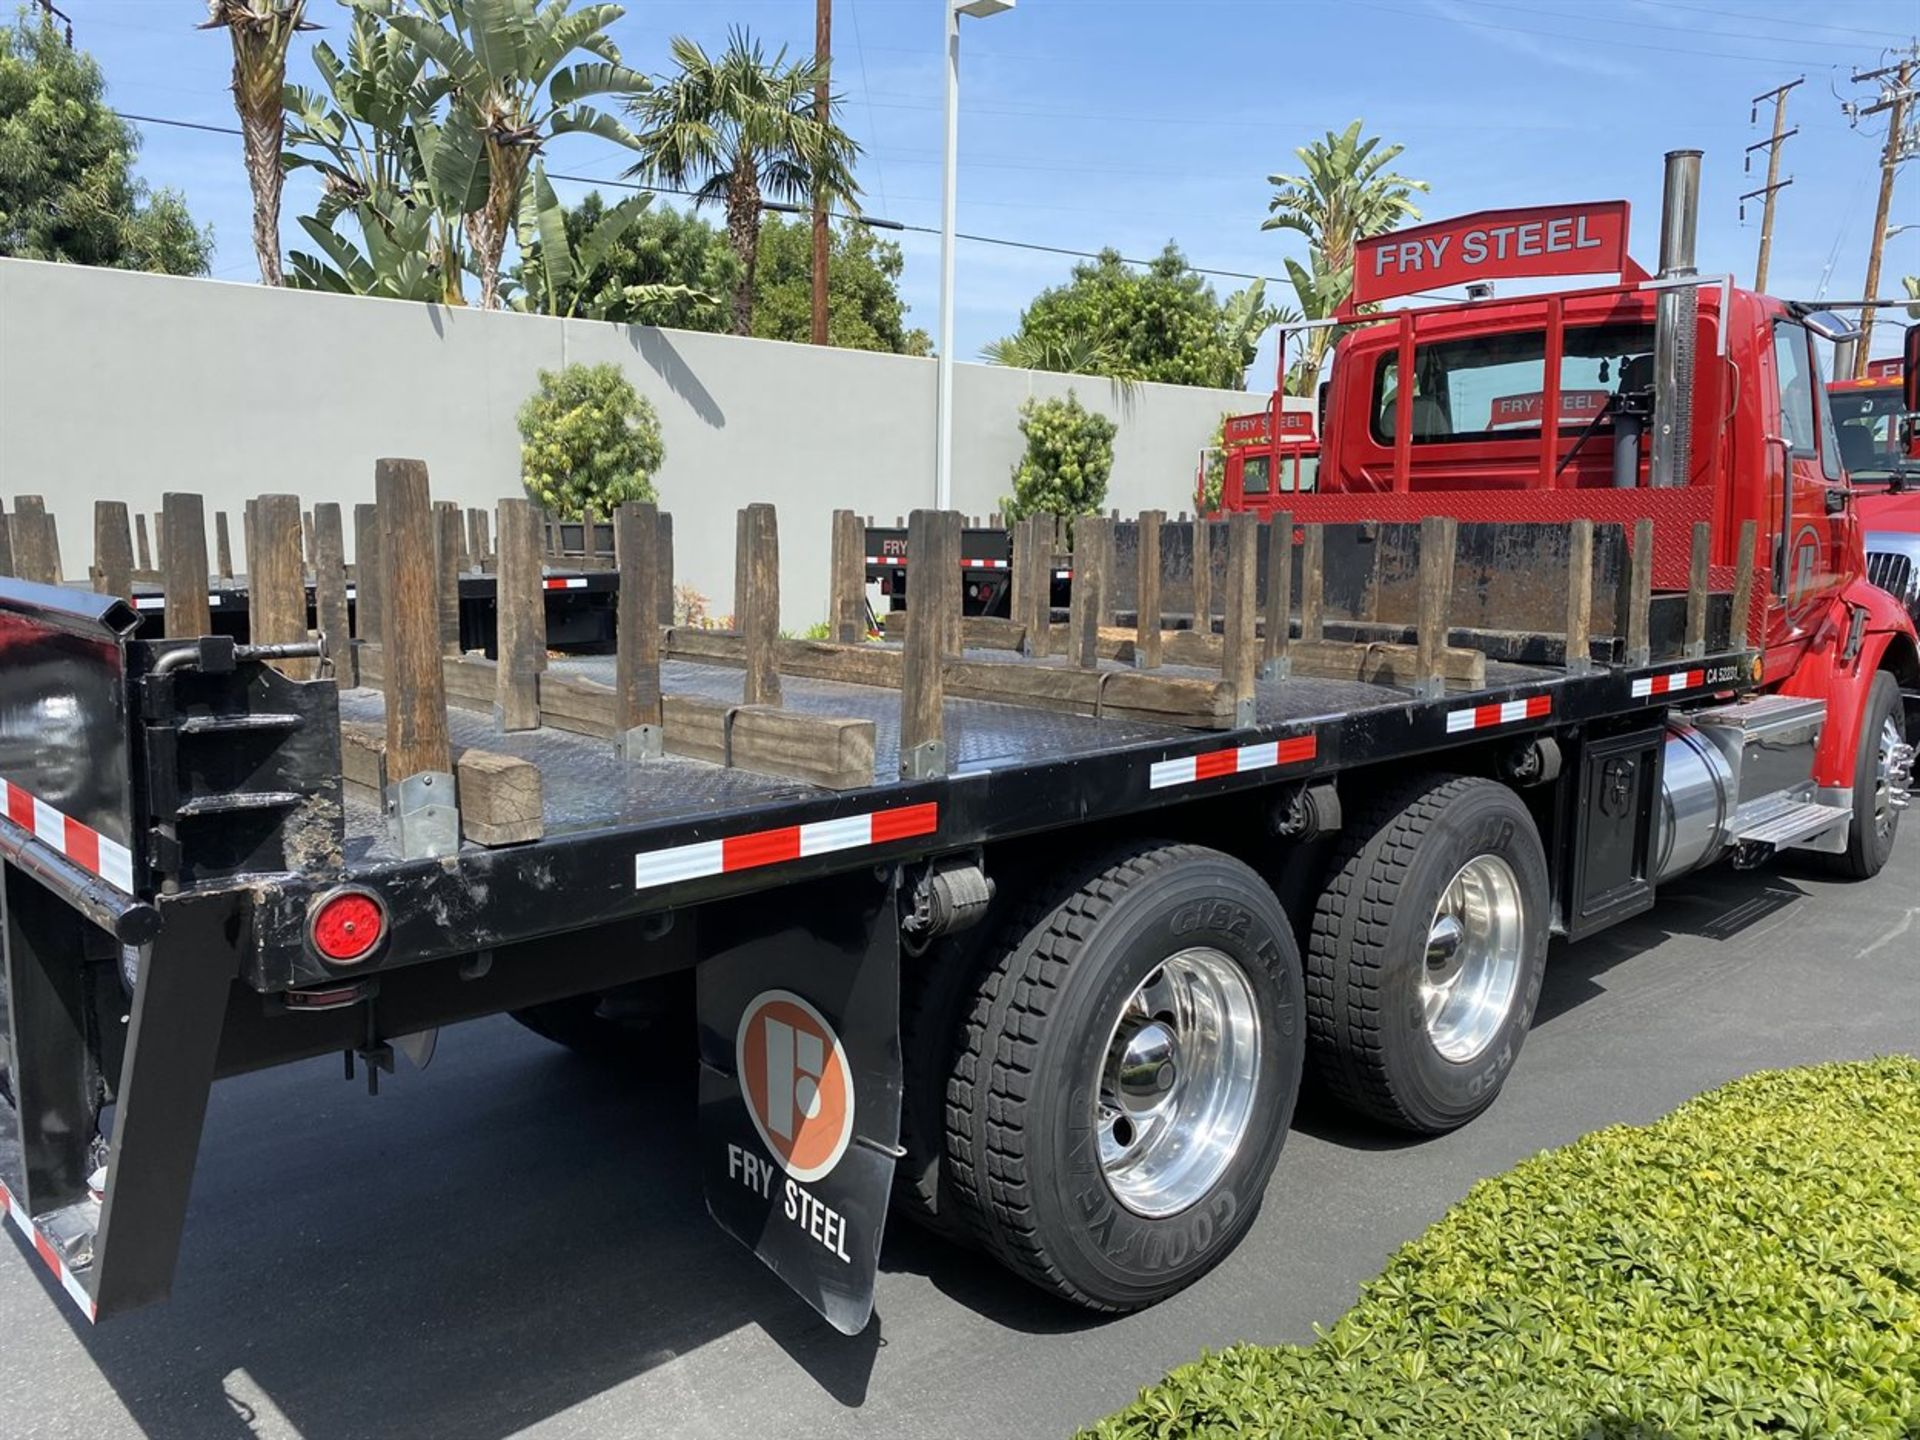 2016 INTERNATIONAL 18' Stake Bed Truck, VIN 1HTHXSNR4GH132503, 129,562 Miles at time of inspection - Image 6 of 21